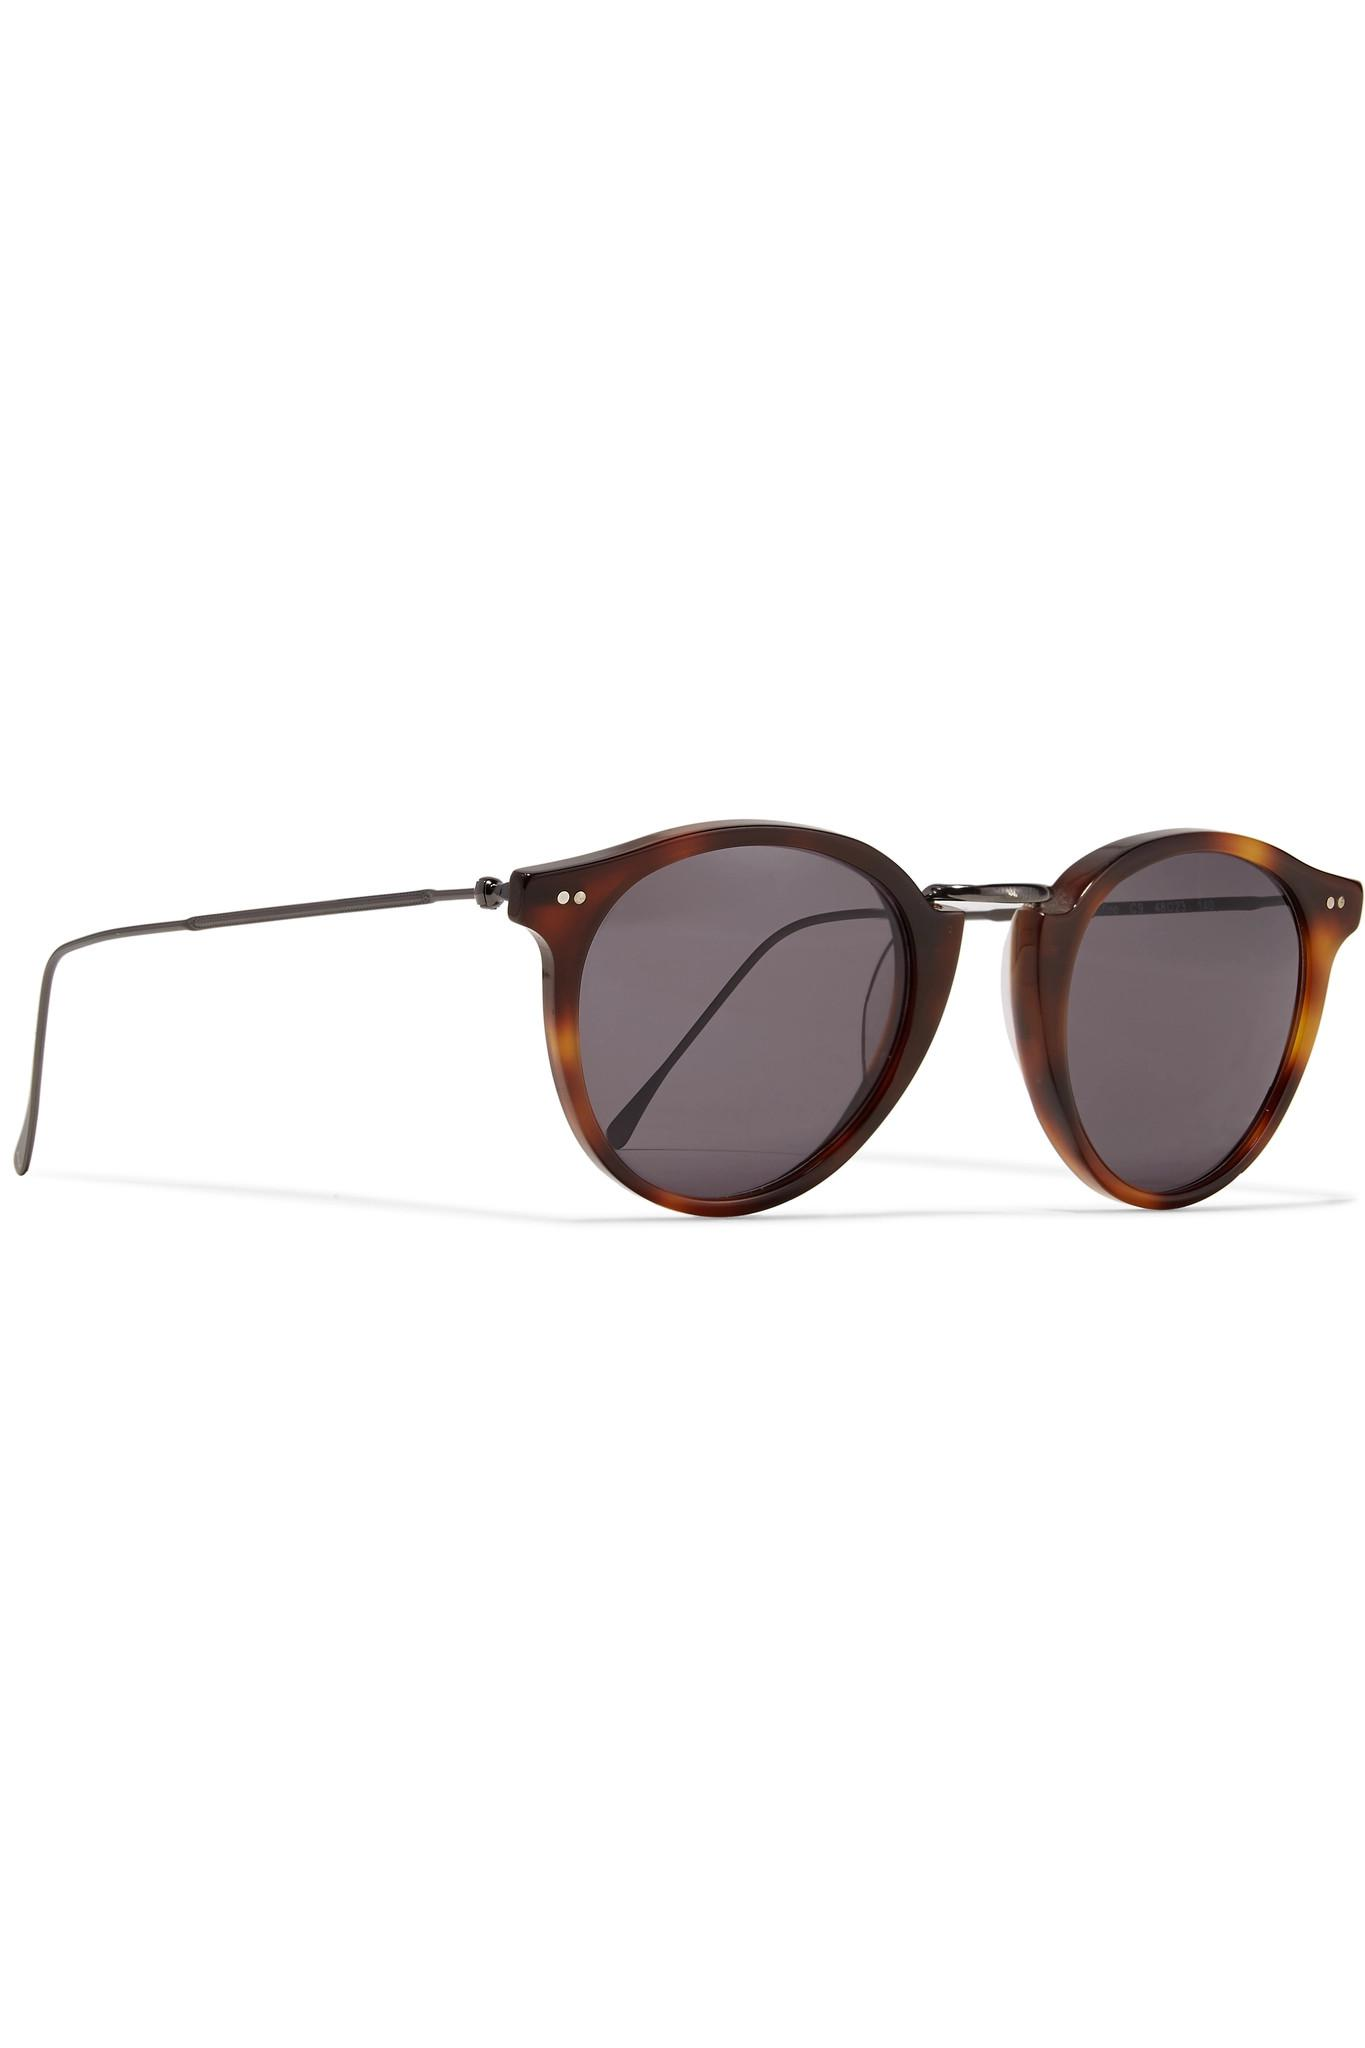 Cat-eye Tortoiseshell Acetate And Gold-tone Sunglasses - one size Rag & Bone ZavNS0